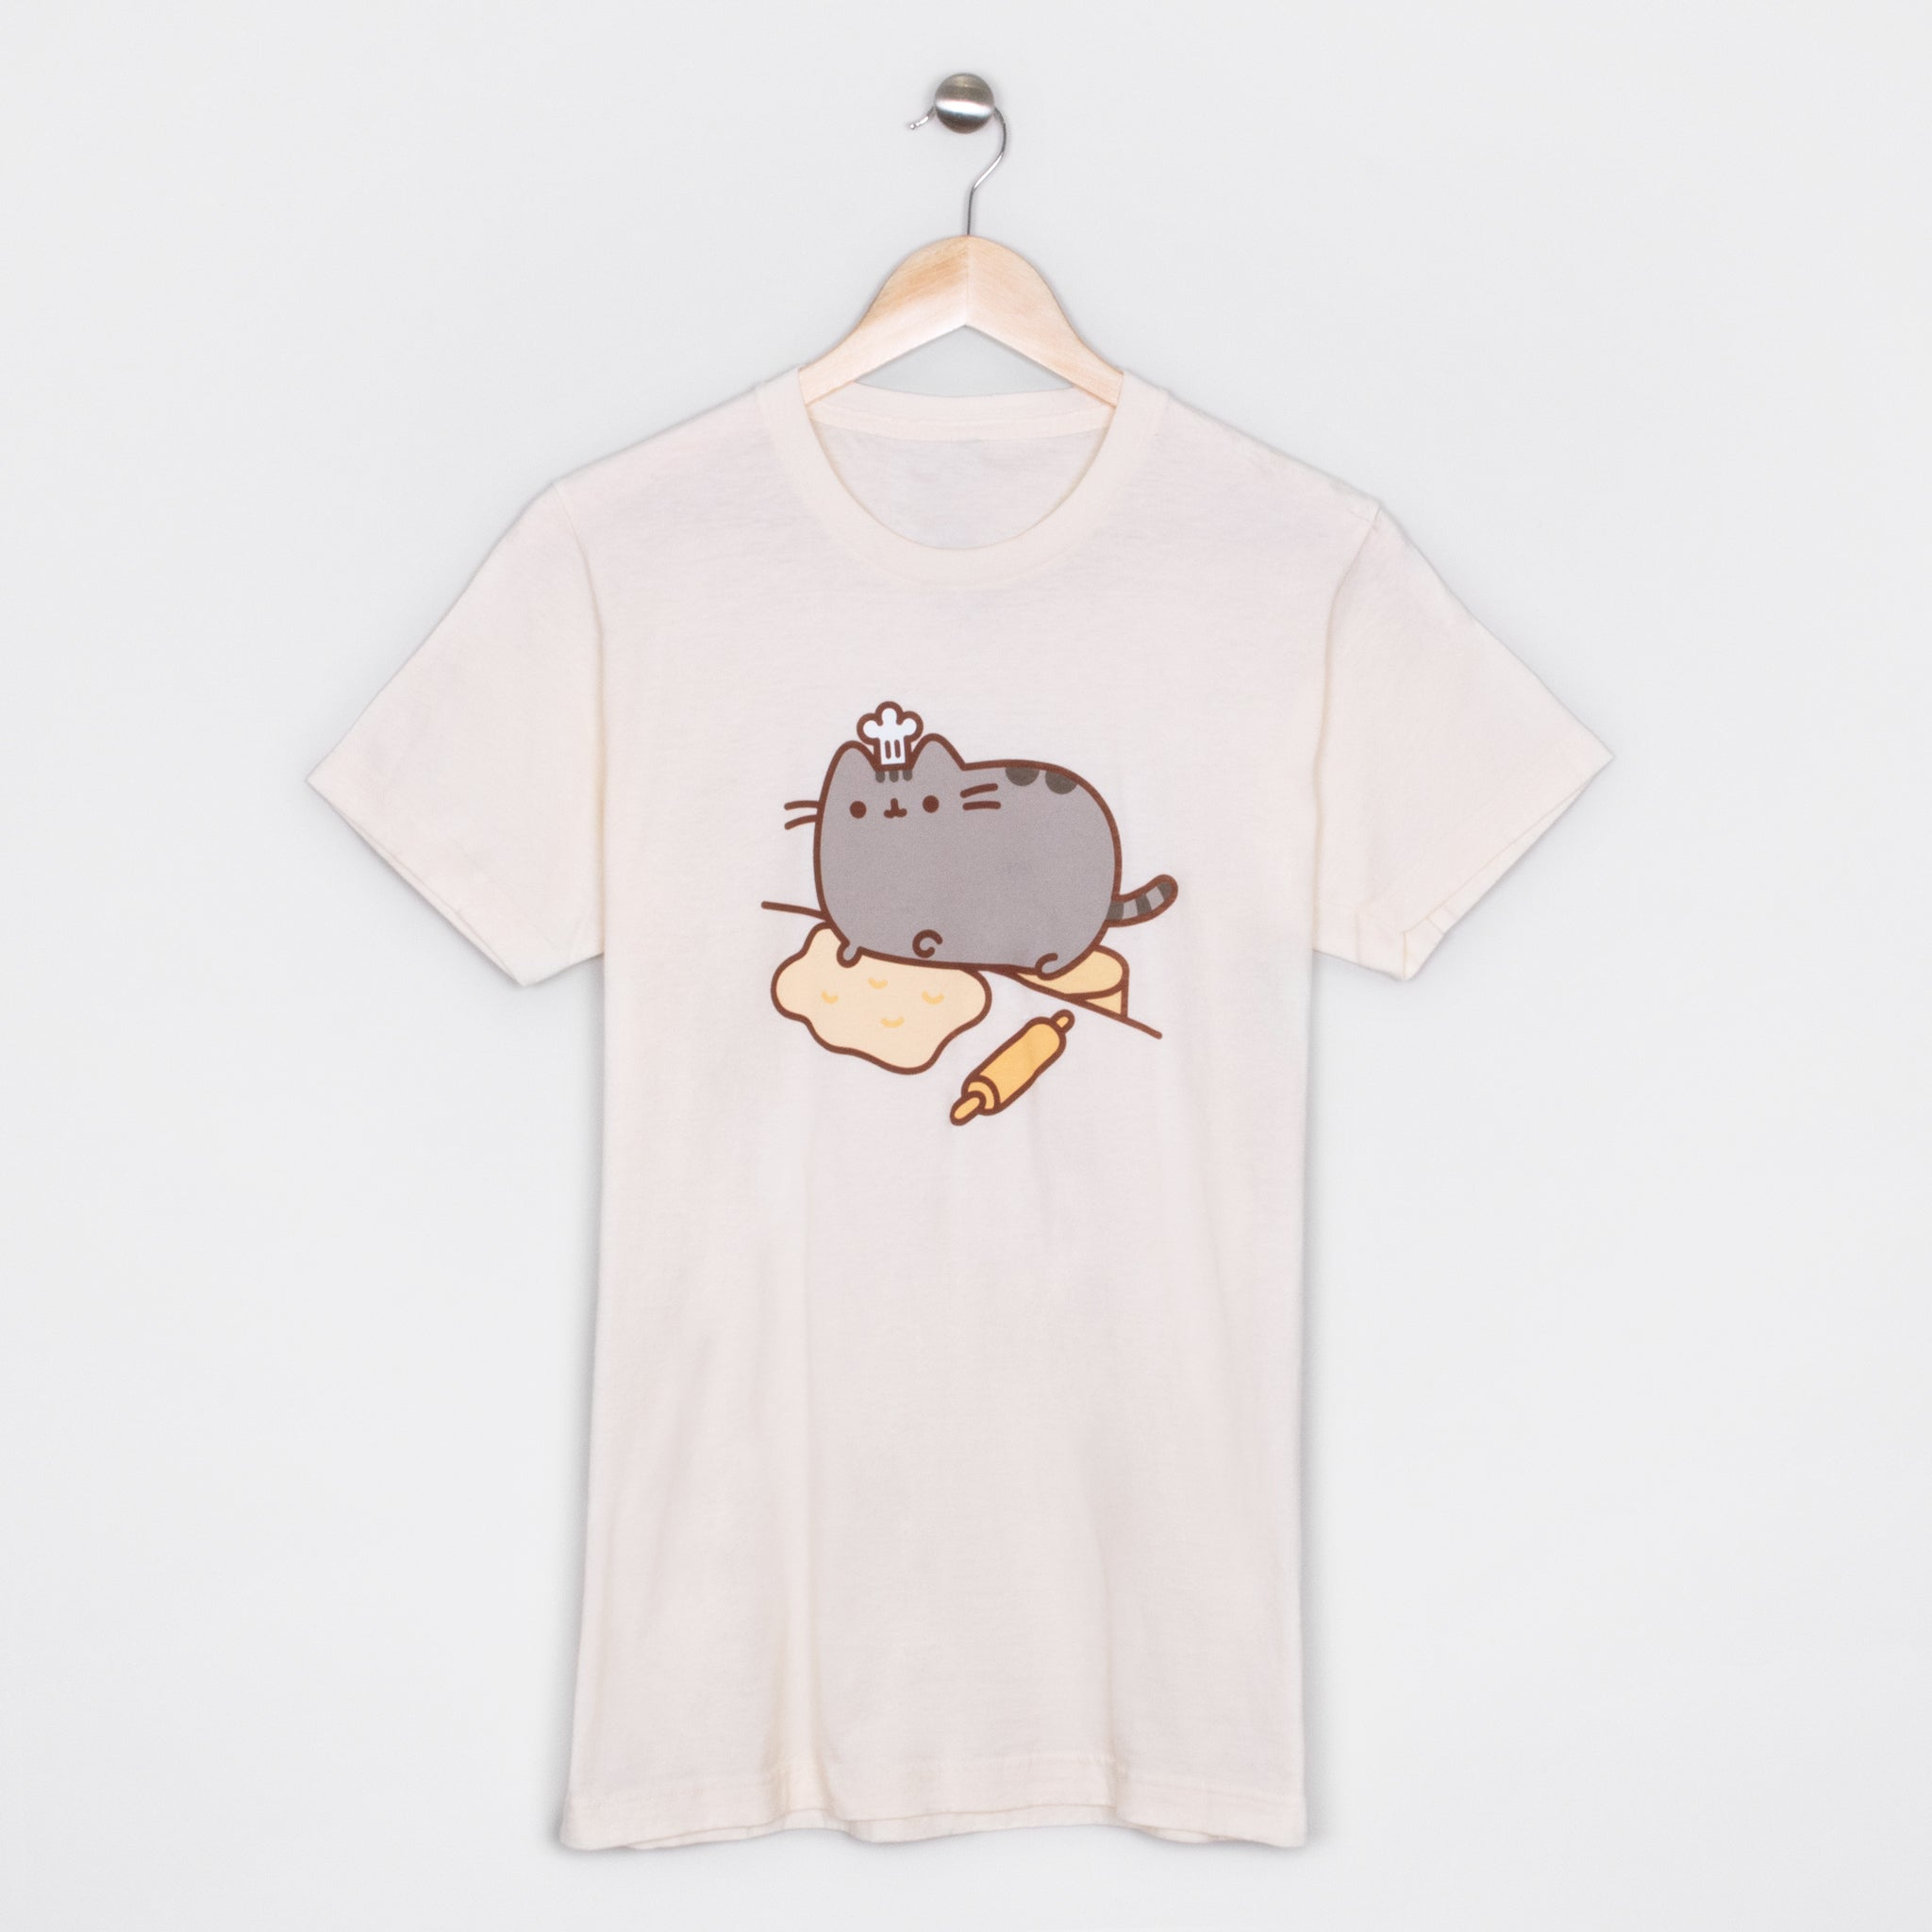 pusheen baking apparel t-shirt shirt baker cute cat culturefly